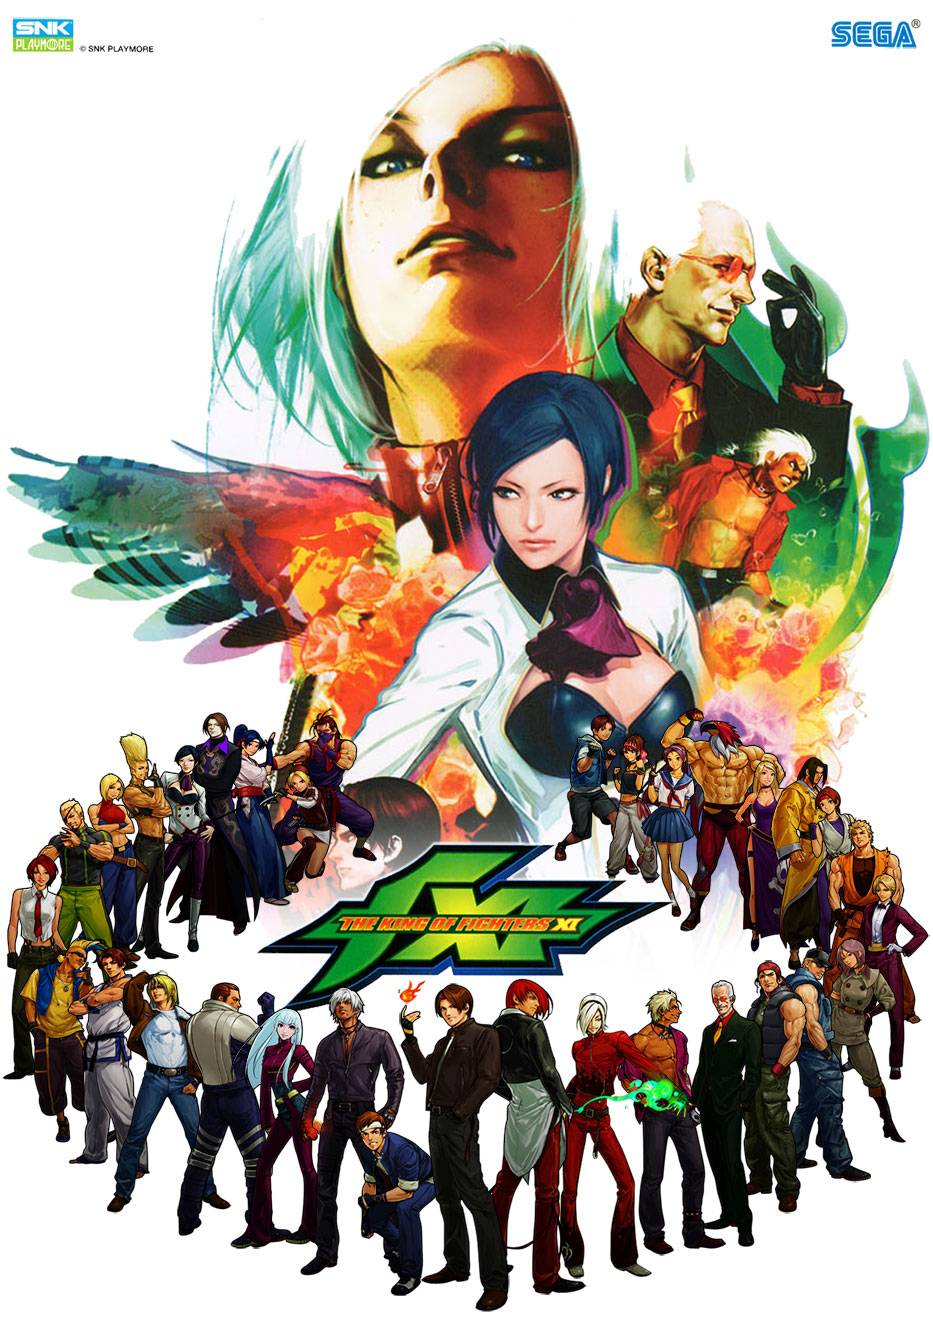 King_Of_Fighters_XI_Cover_by_Beforeiforget90.jpg